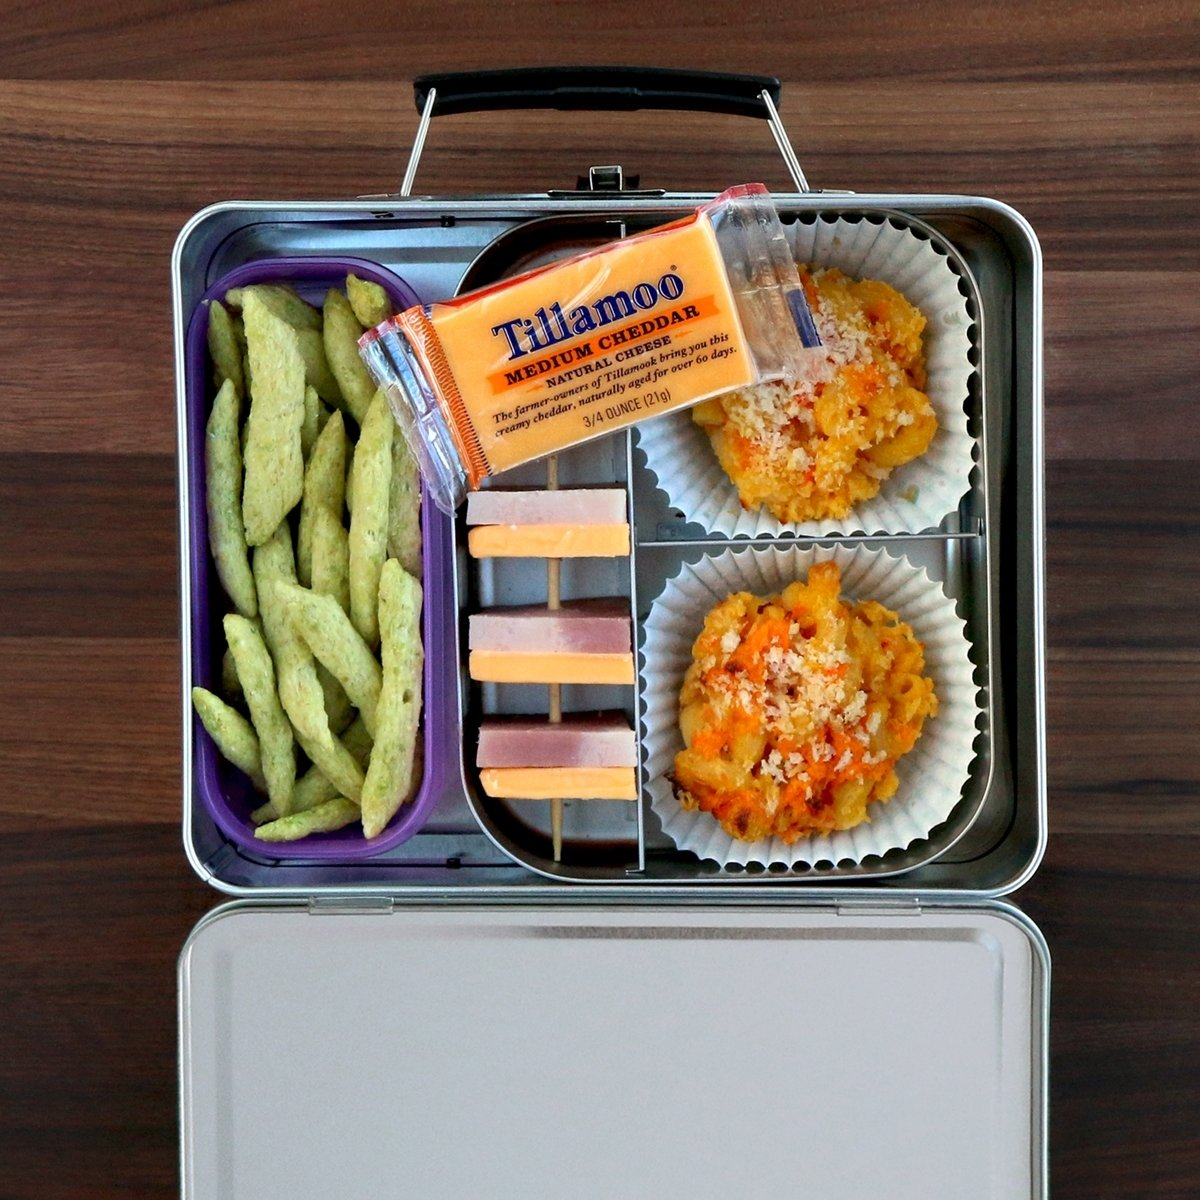 10 Cute Lunch Box Ideas For Picky Eaters picky eaters lunchbox idea tillamook 1